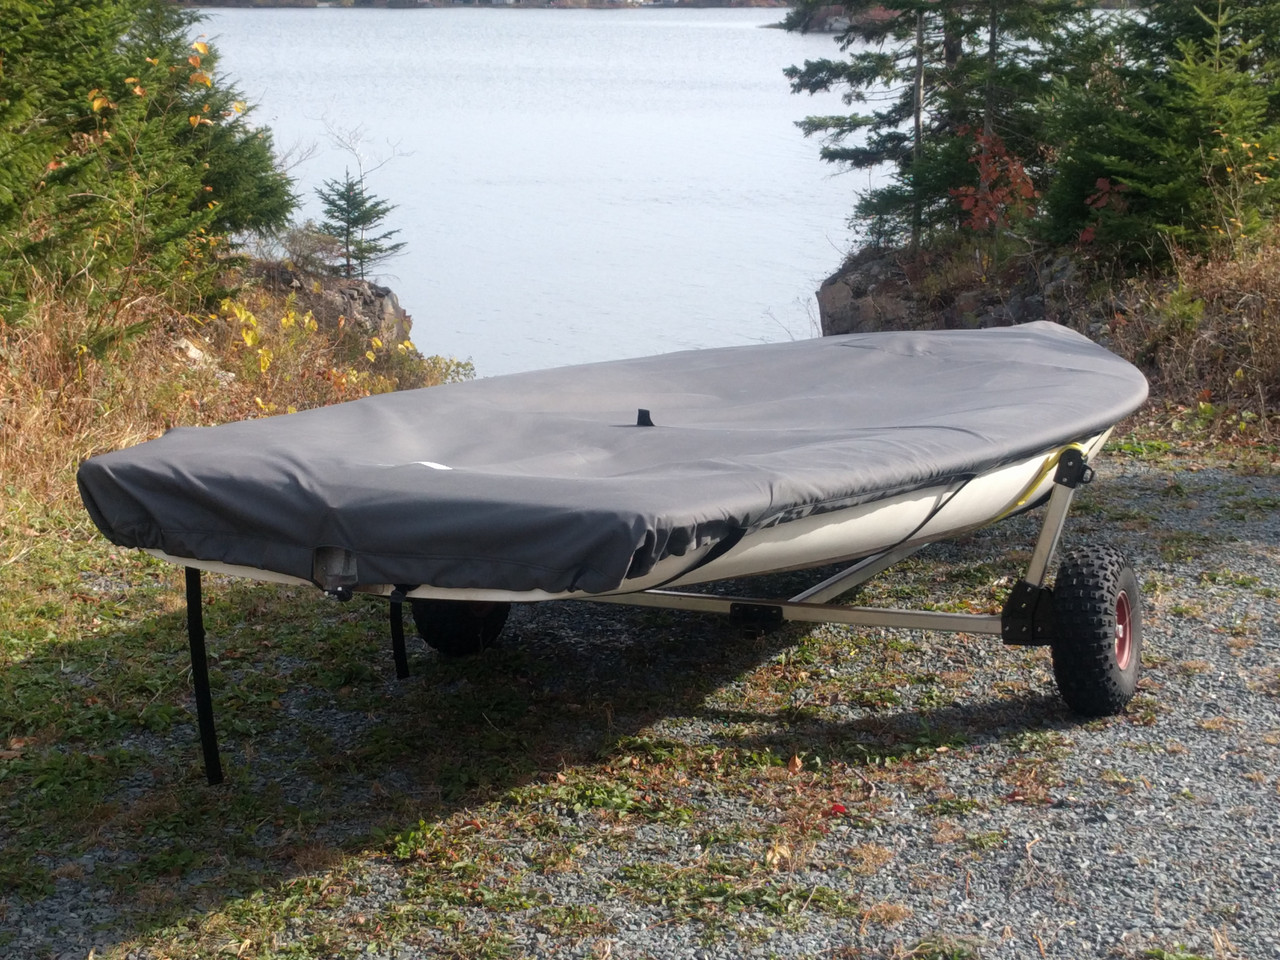 Protect your Bombardier Invitation 3.8 from the elements while on shore or in storage with a long lasting boat cover from SLO Sail and Canvas.